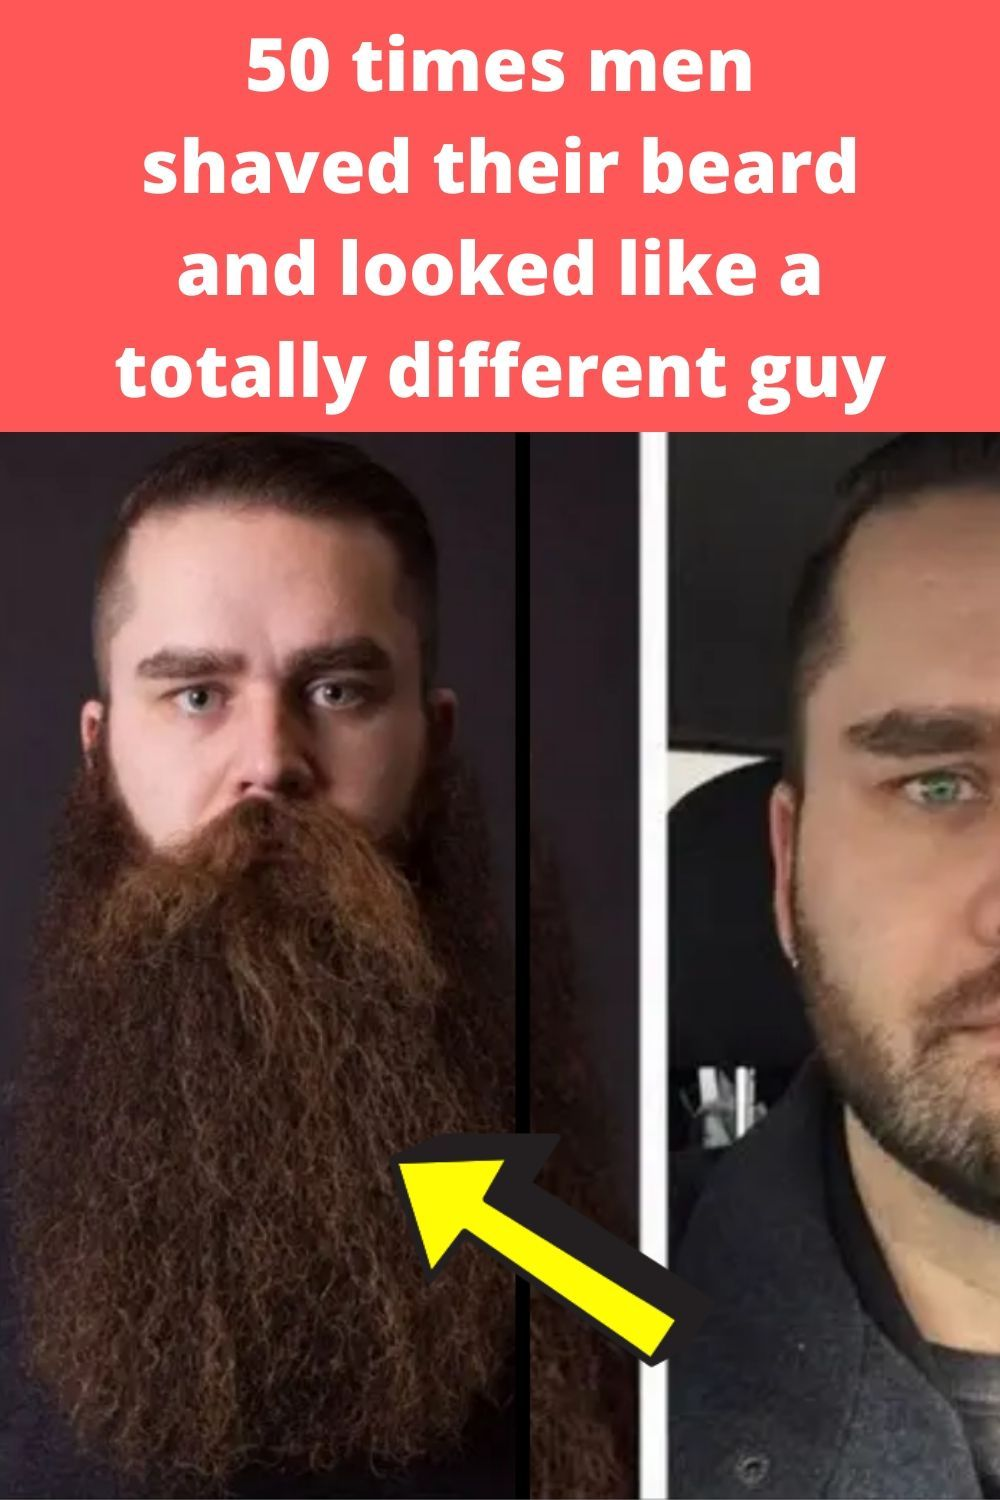 75 Times men shaved their beards and looked like a